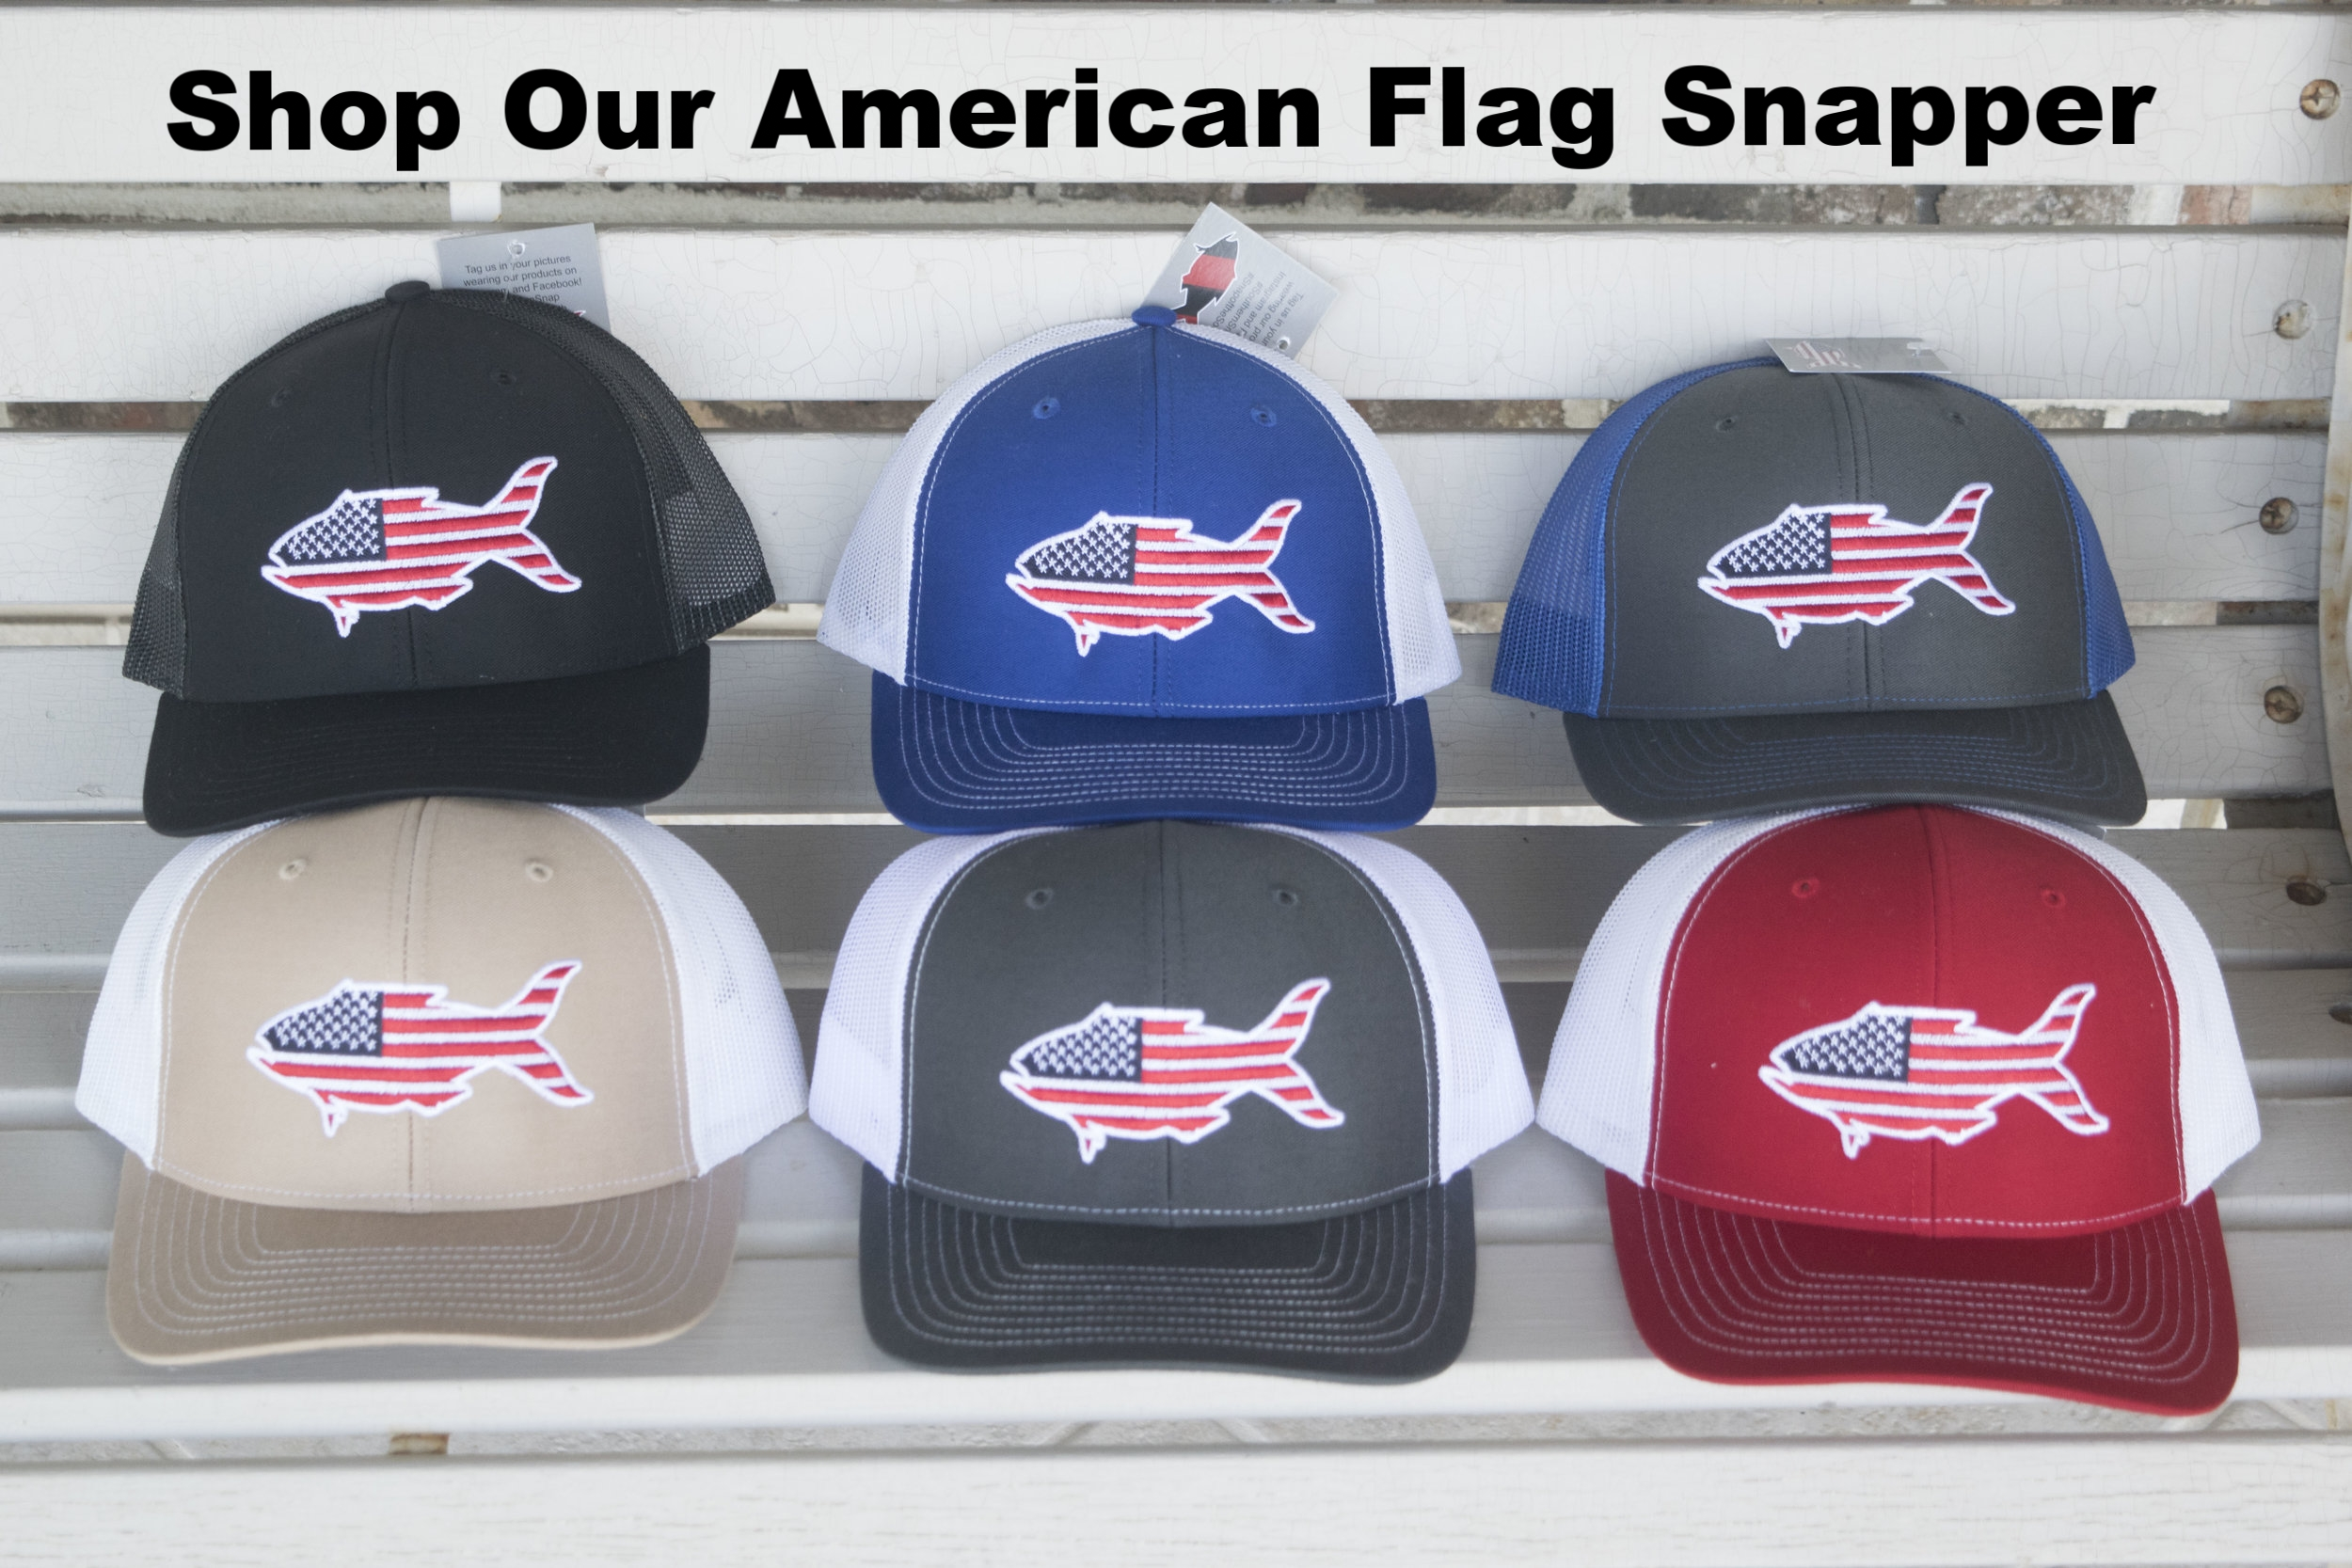 Shop Our American Flag Snapper